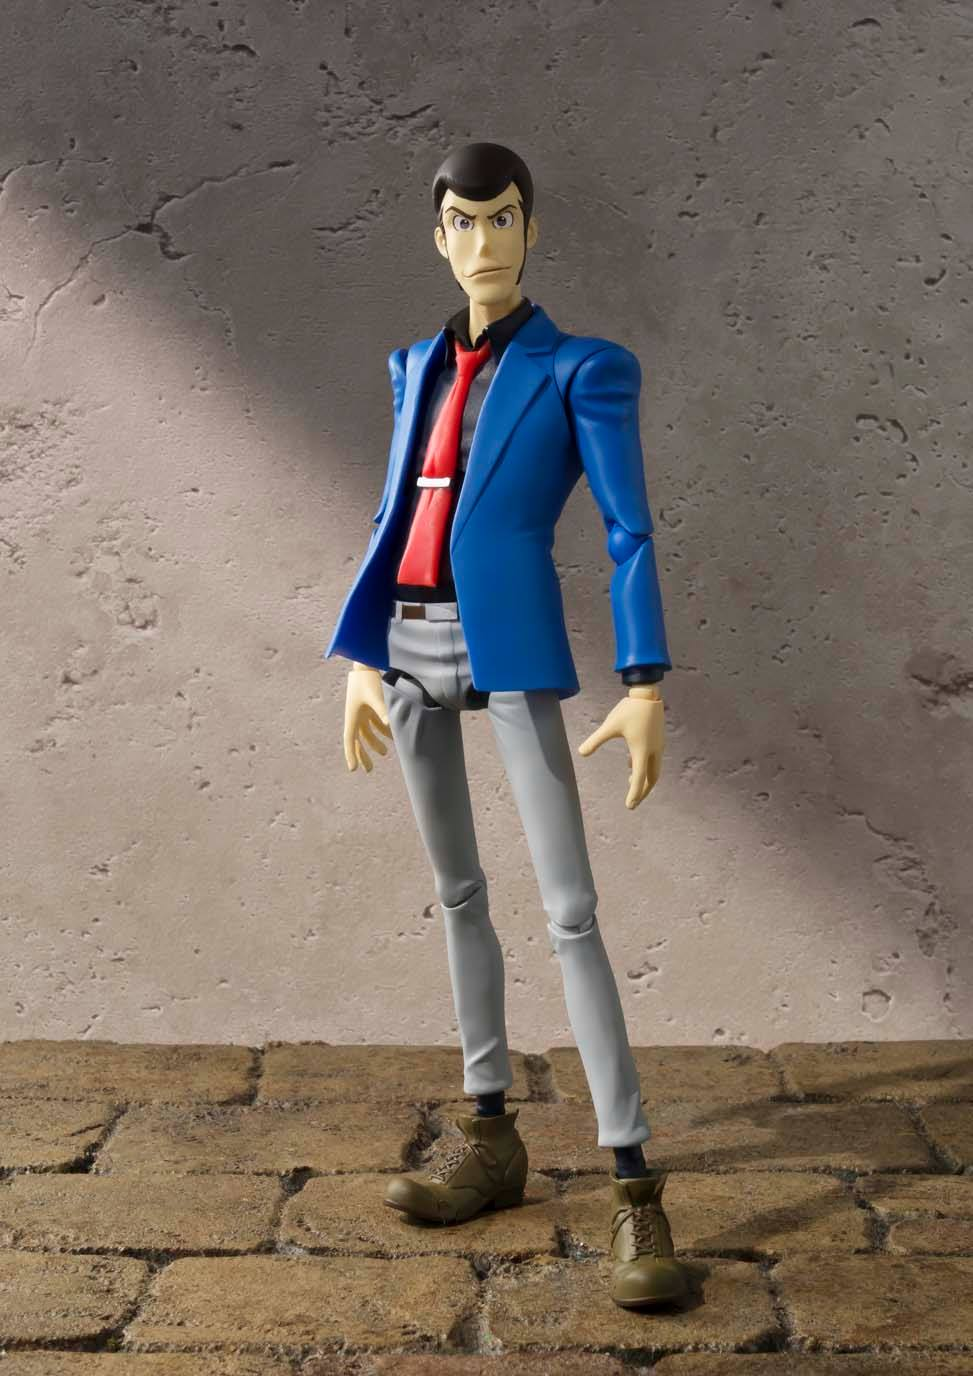 LUPIN III THE THIRD FIGURA 15 CM LUPIN THE THIRD SH FIGUARTS